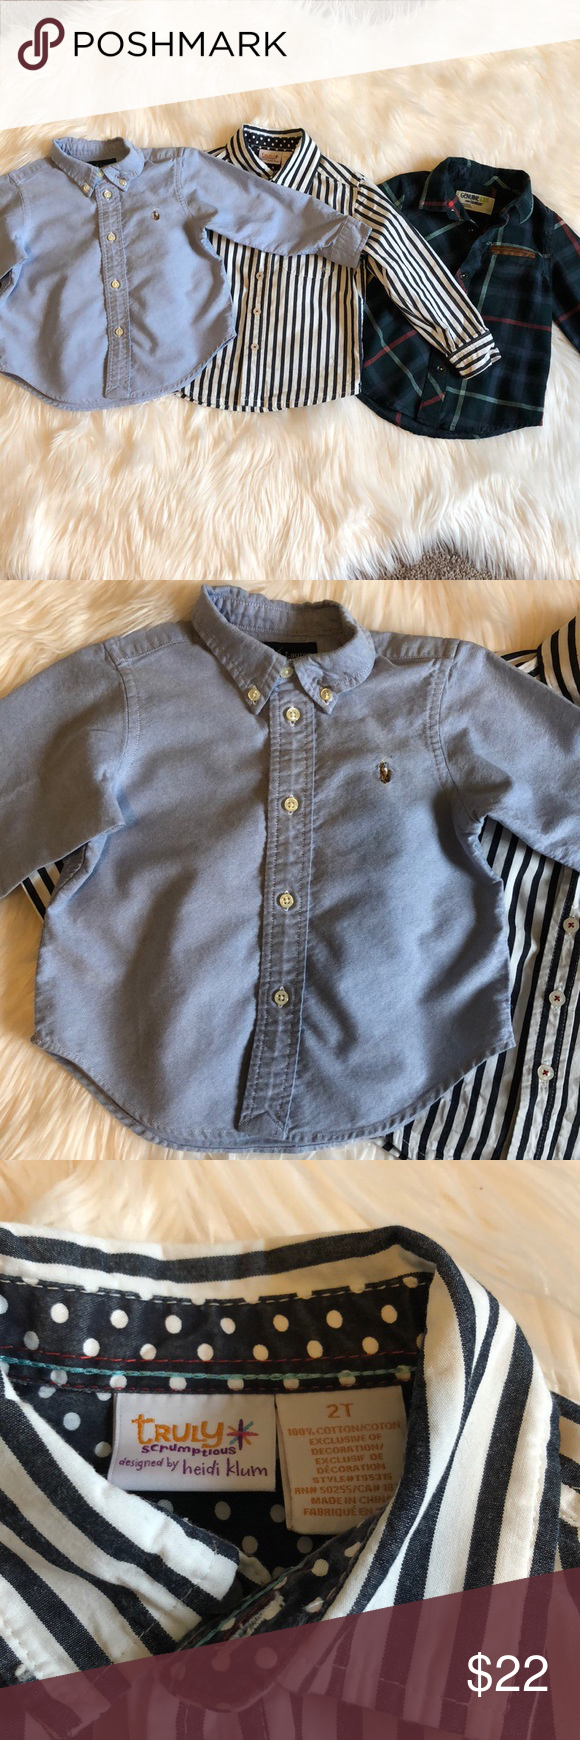 01ffba49e Toddler boy button down dress shirt bundle Your little man is sure to look  dapper in each of these. All in excellent used condition.